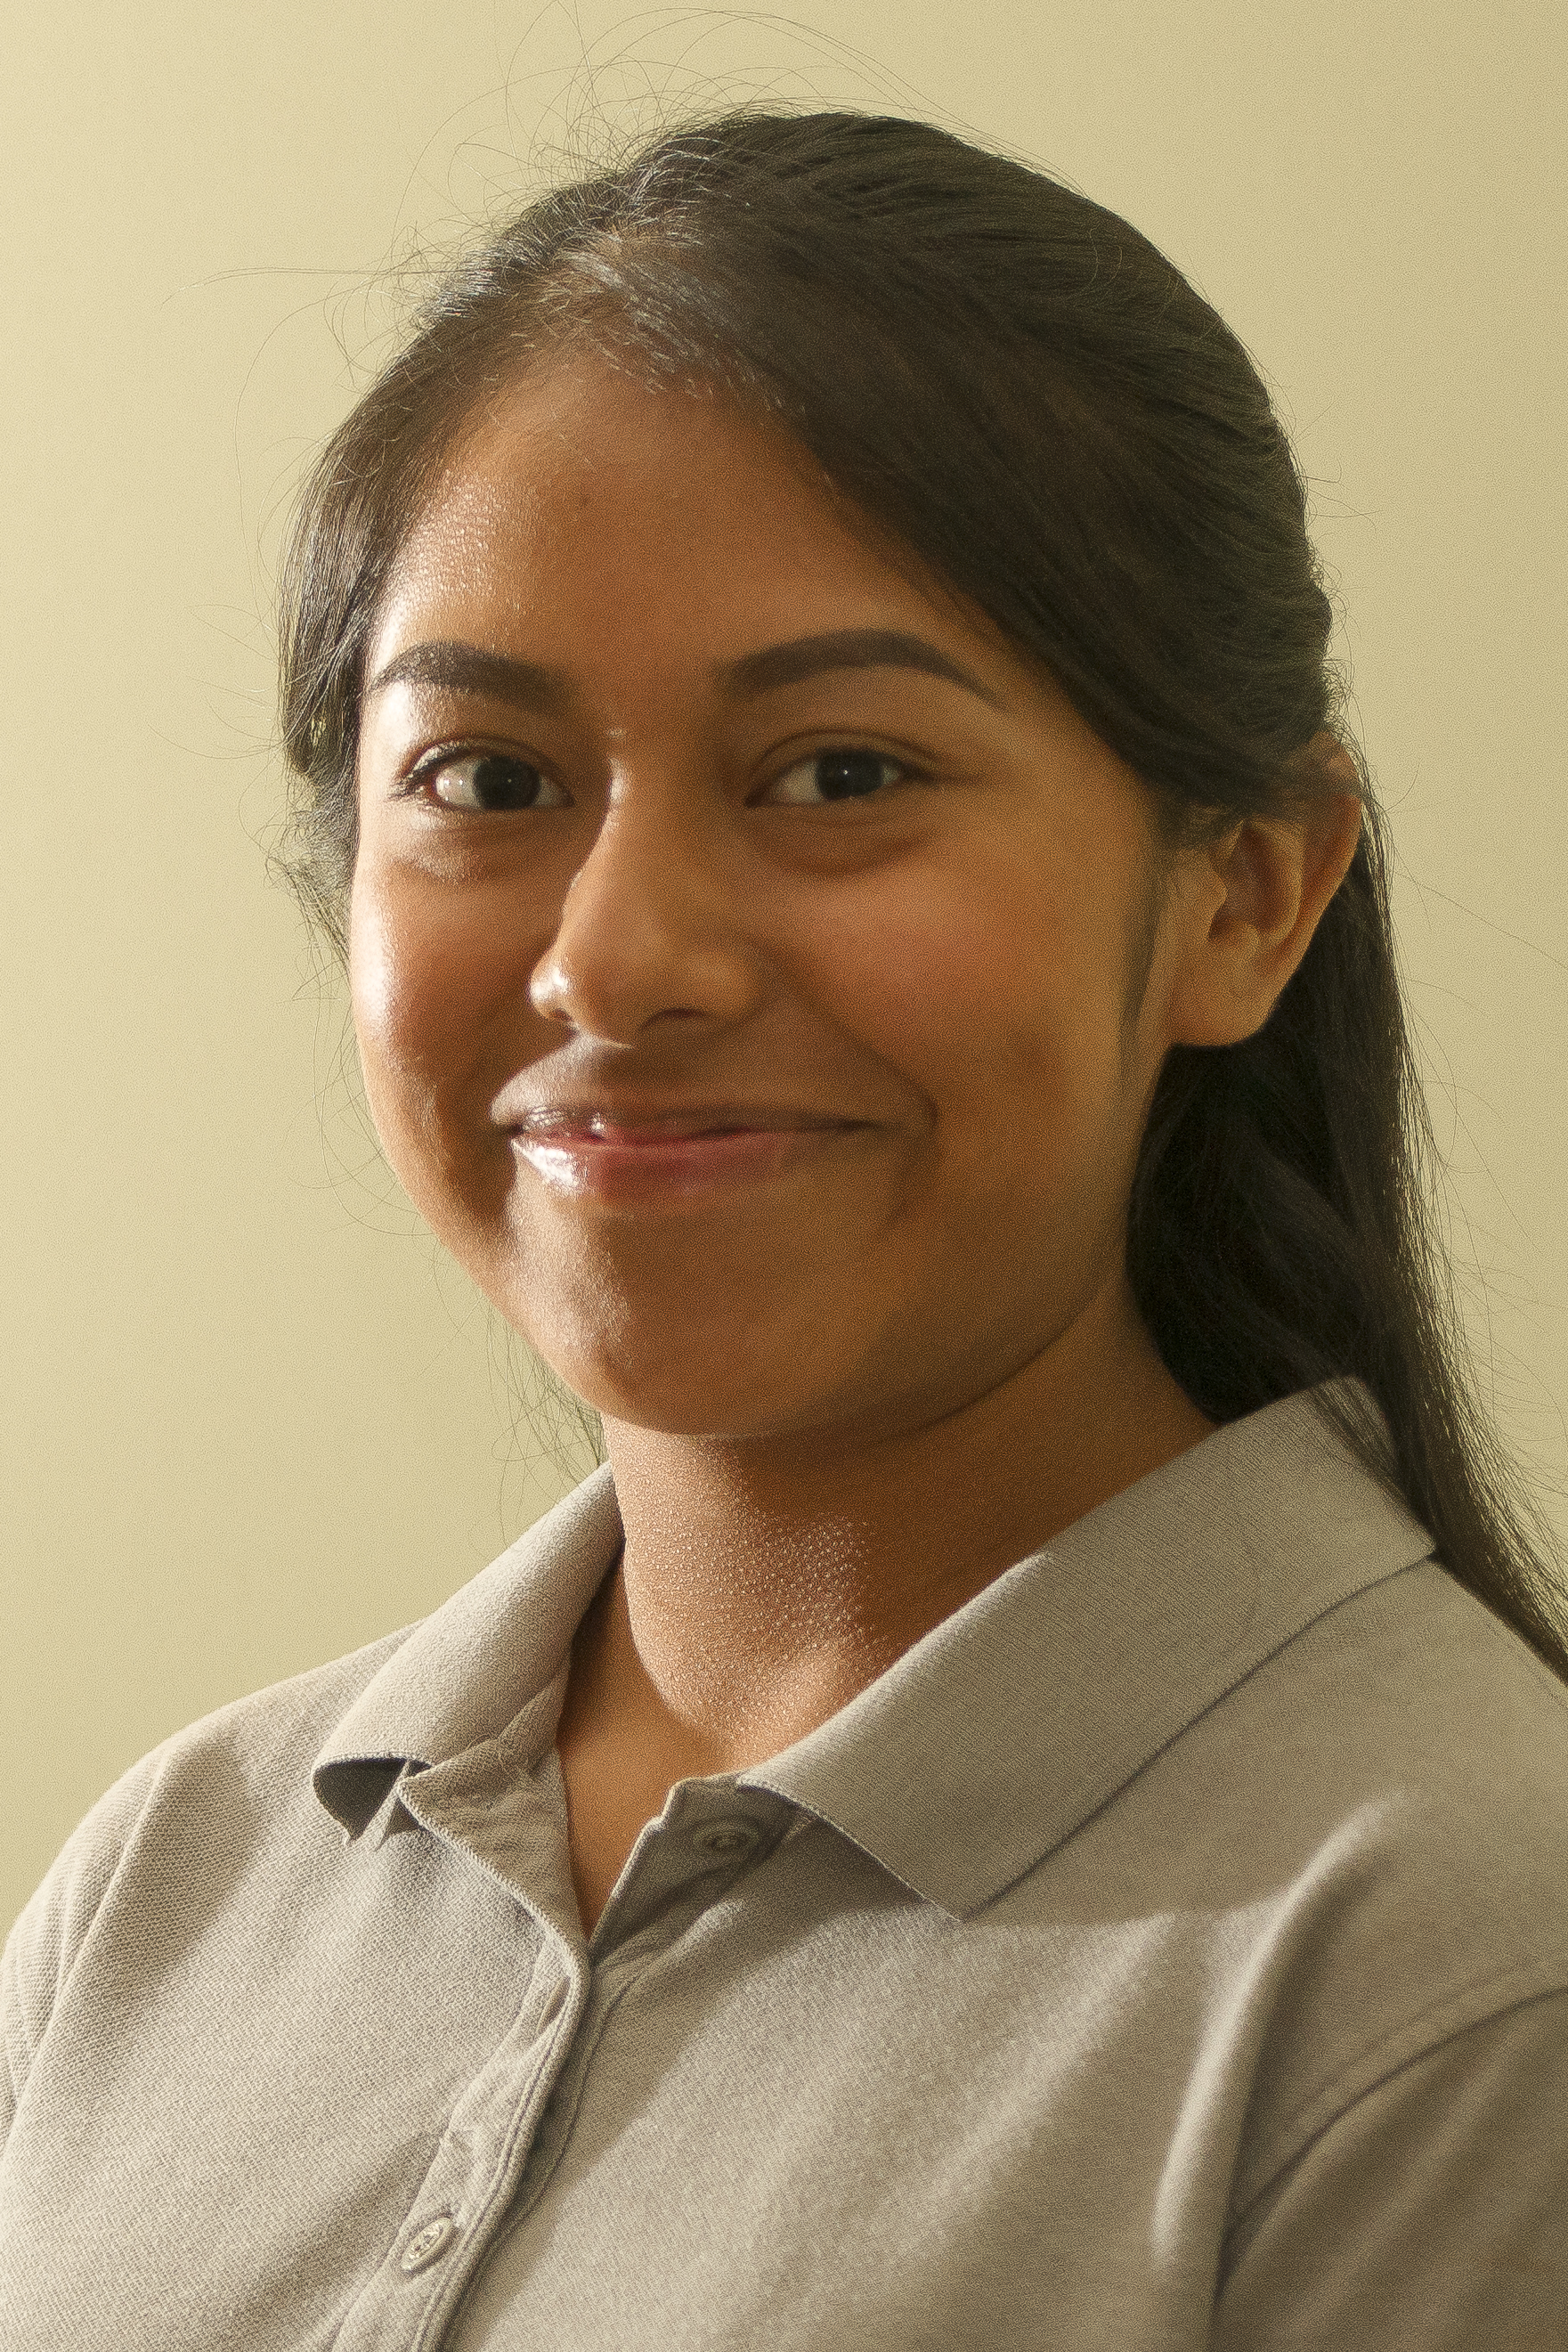 Ana,   C.N.A,    brings a gentle spirit and quiet confidence in her role as a resident assistant that everyone appreciates.